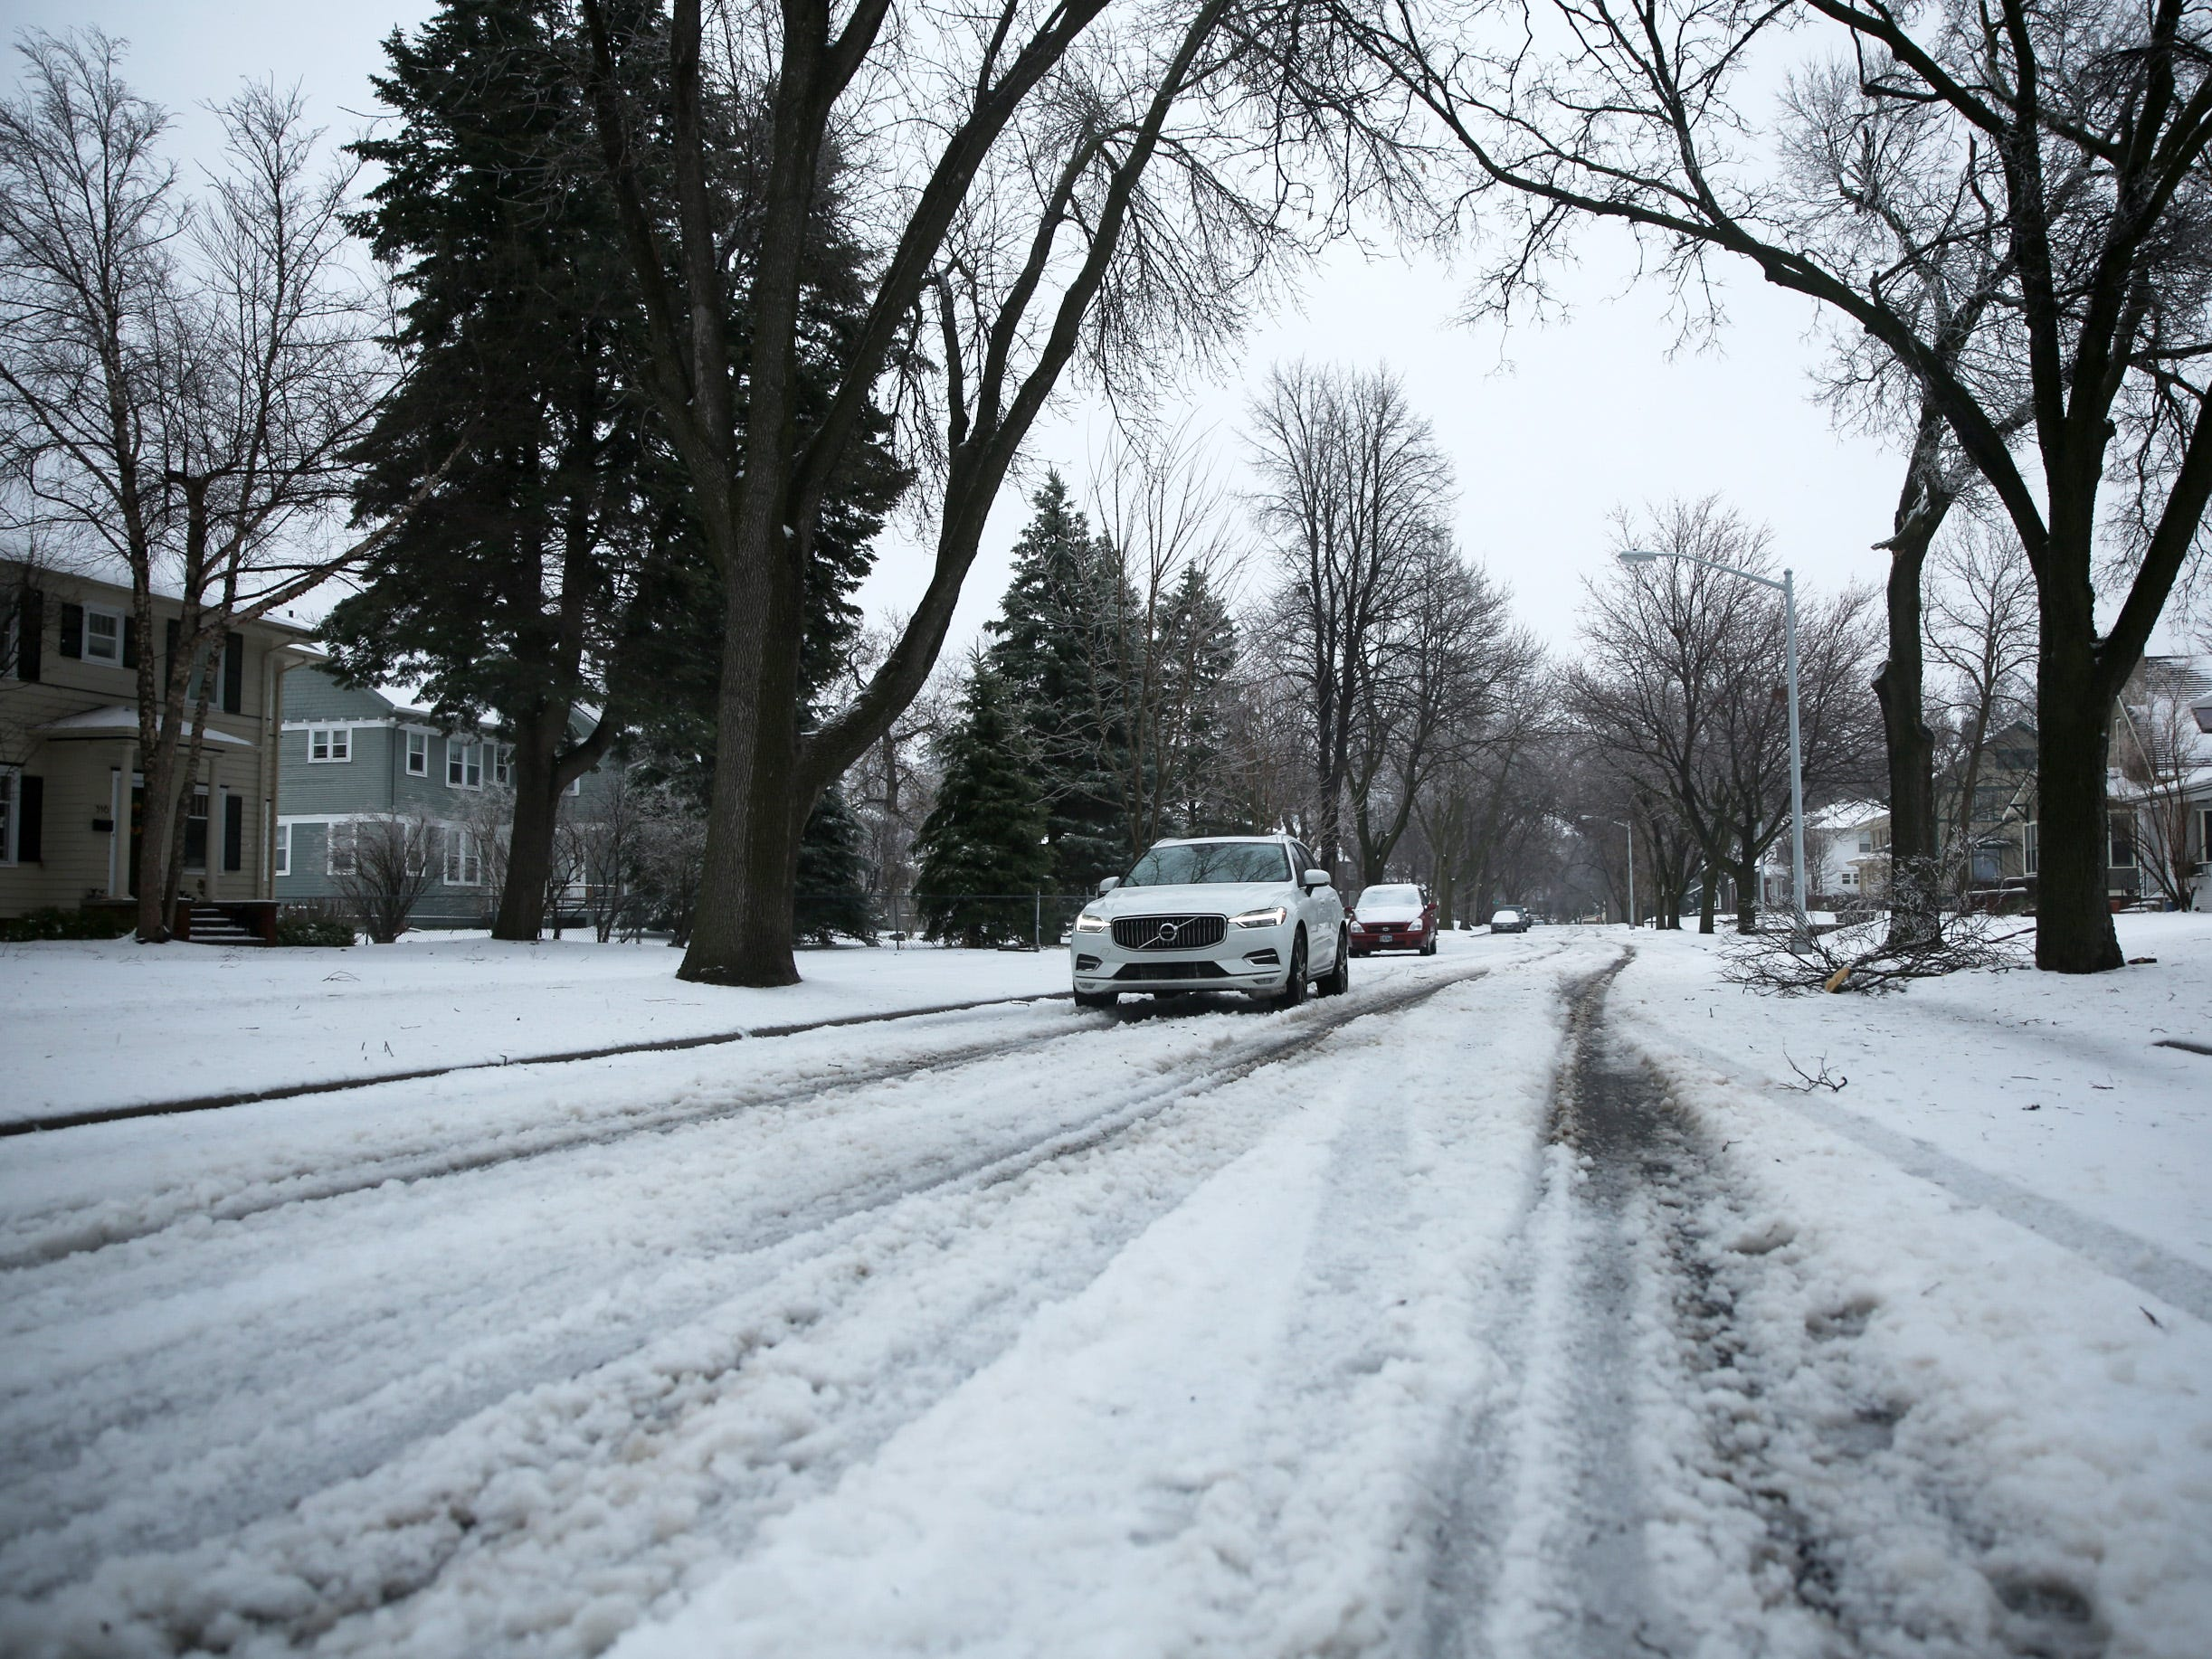 A vehicle drives through slush on residential roads in Sioux Falls on Thursday, April 11. Rain, sleet, snow and ice fell in the region as a winter storm system moved through South Dakota.